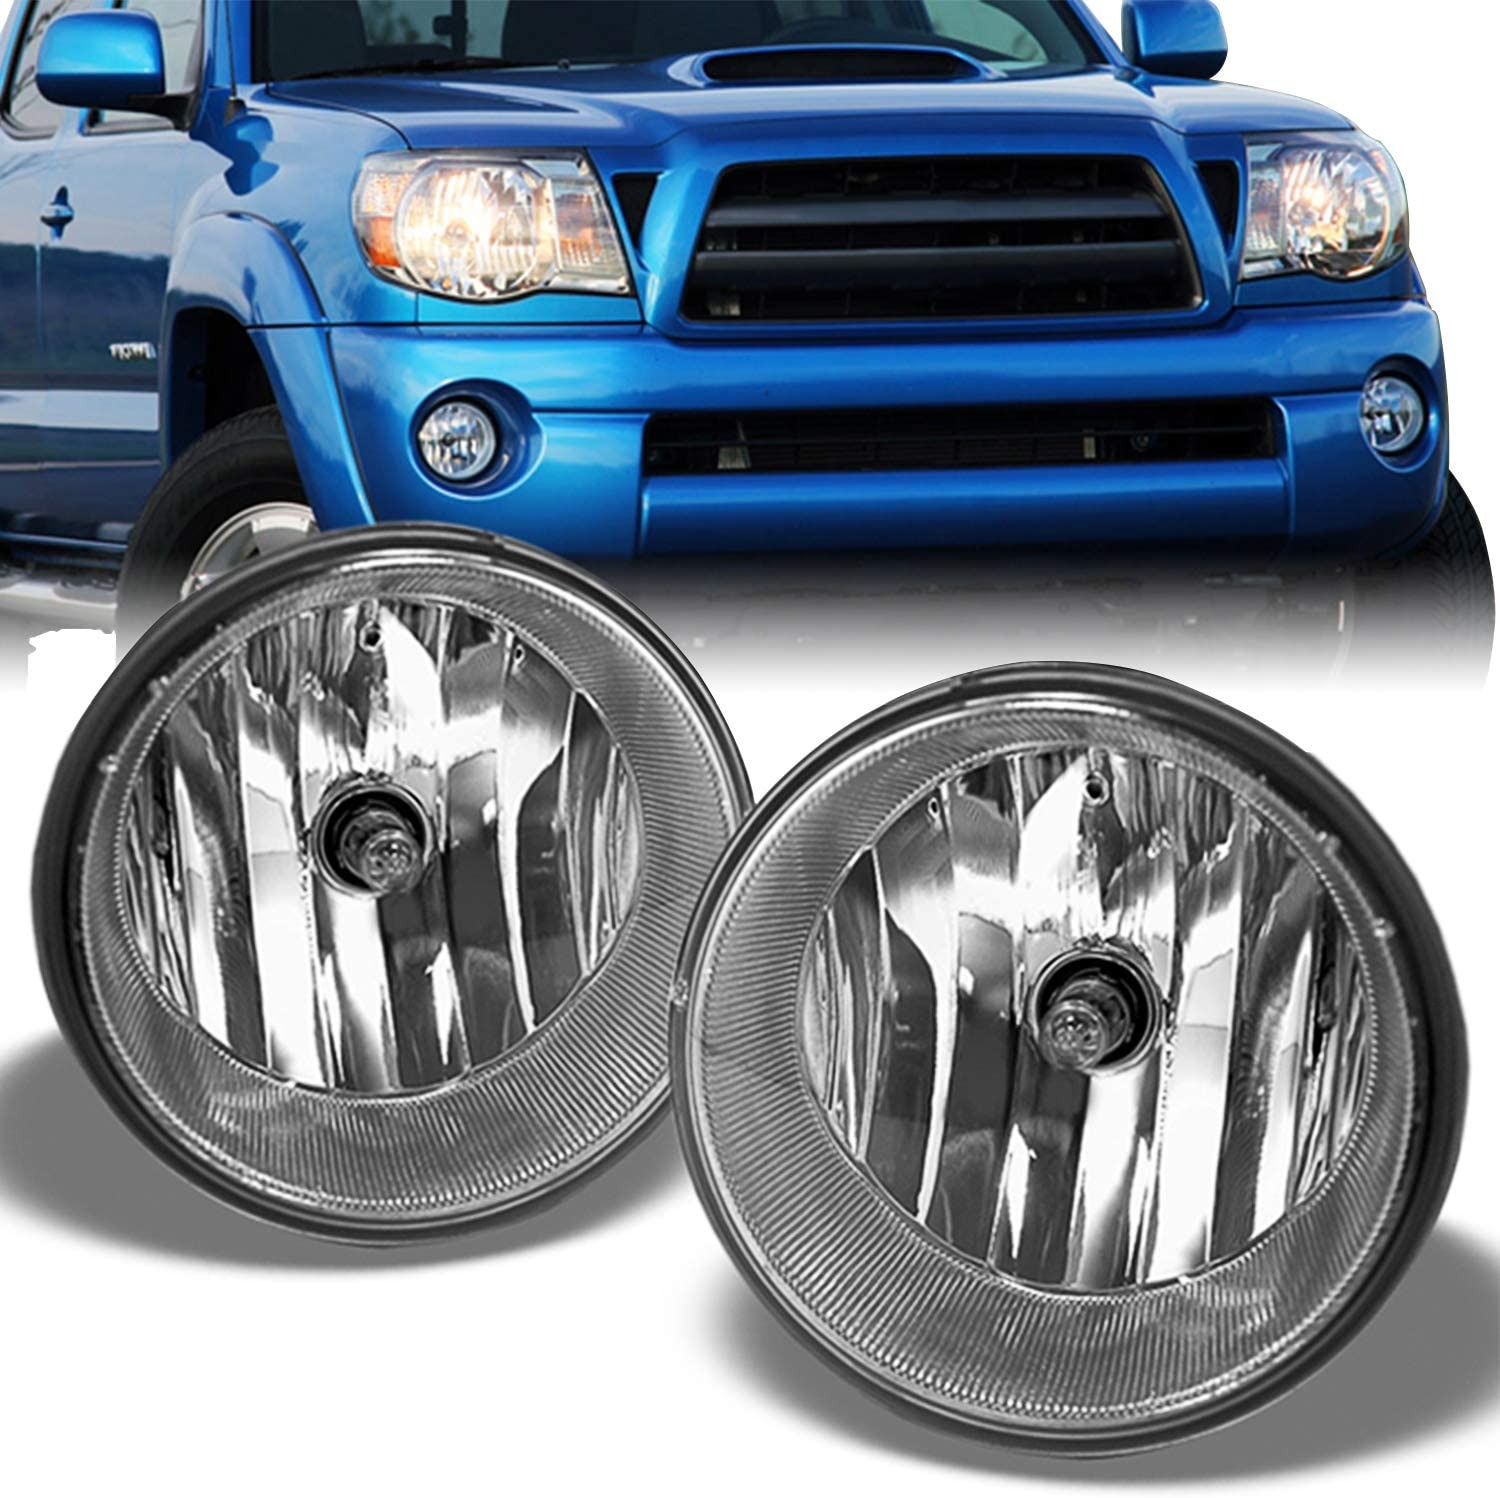 [XOTG_4463]  Amazon.com: For 05-11 Toyota Tacoma Pickup Bumper Fog Lights Driving Lamps  Set w/Bulbs + Wiring Harness + Switch: Automotive | 2009 Toyota Pick Up Wiring Harness |  | Amazon.com